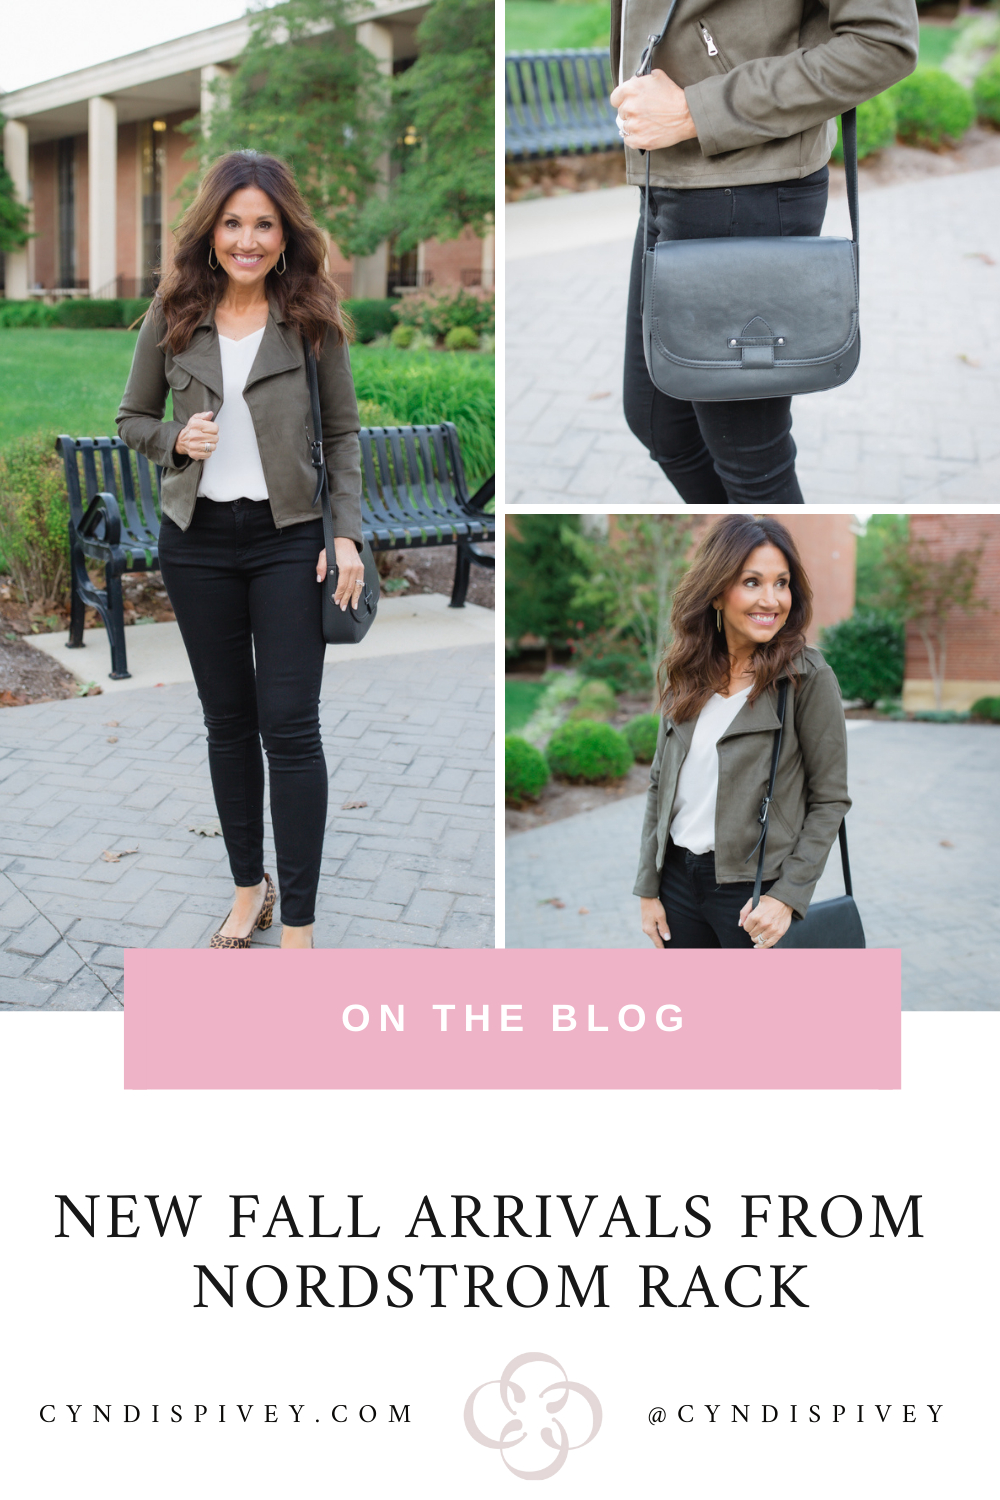 New Fall Arrivals from Nordstrom Rack